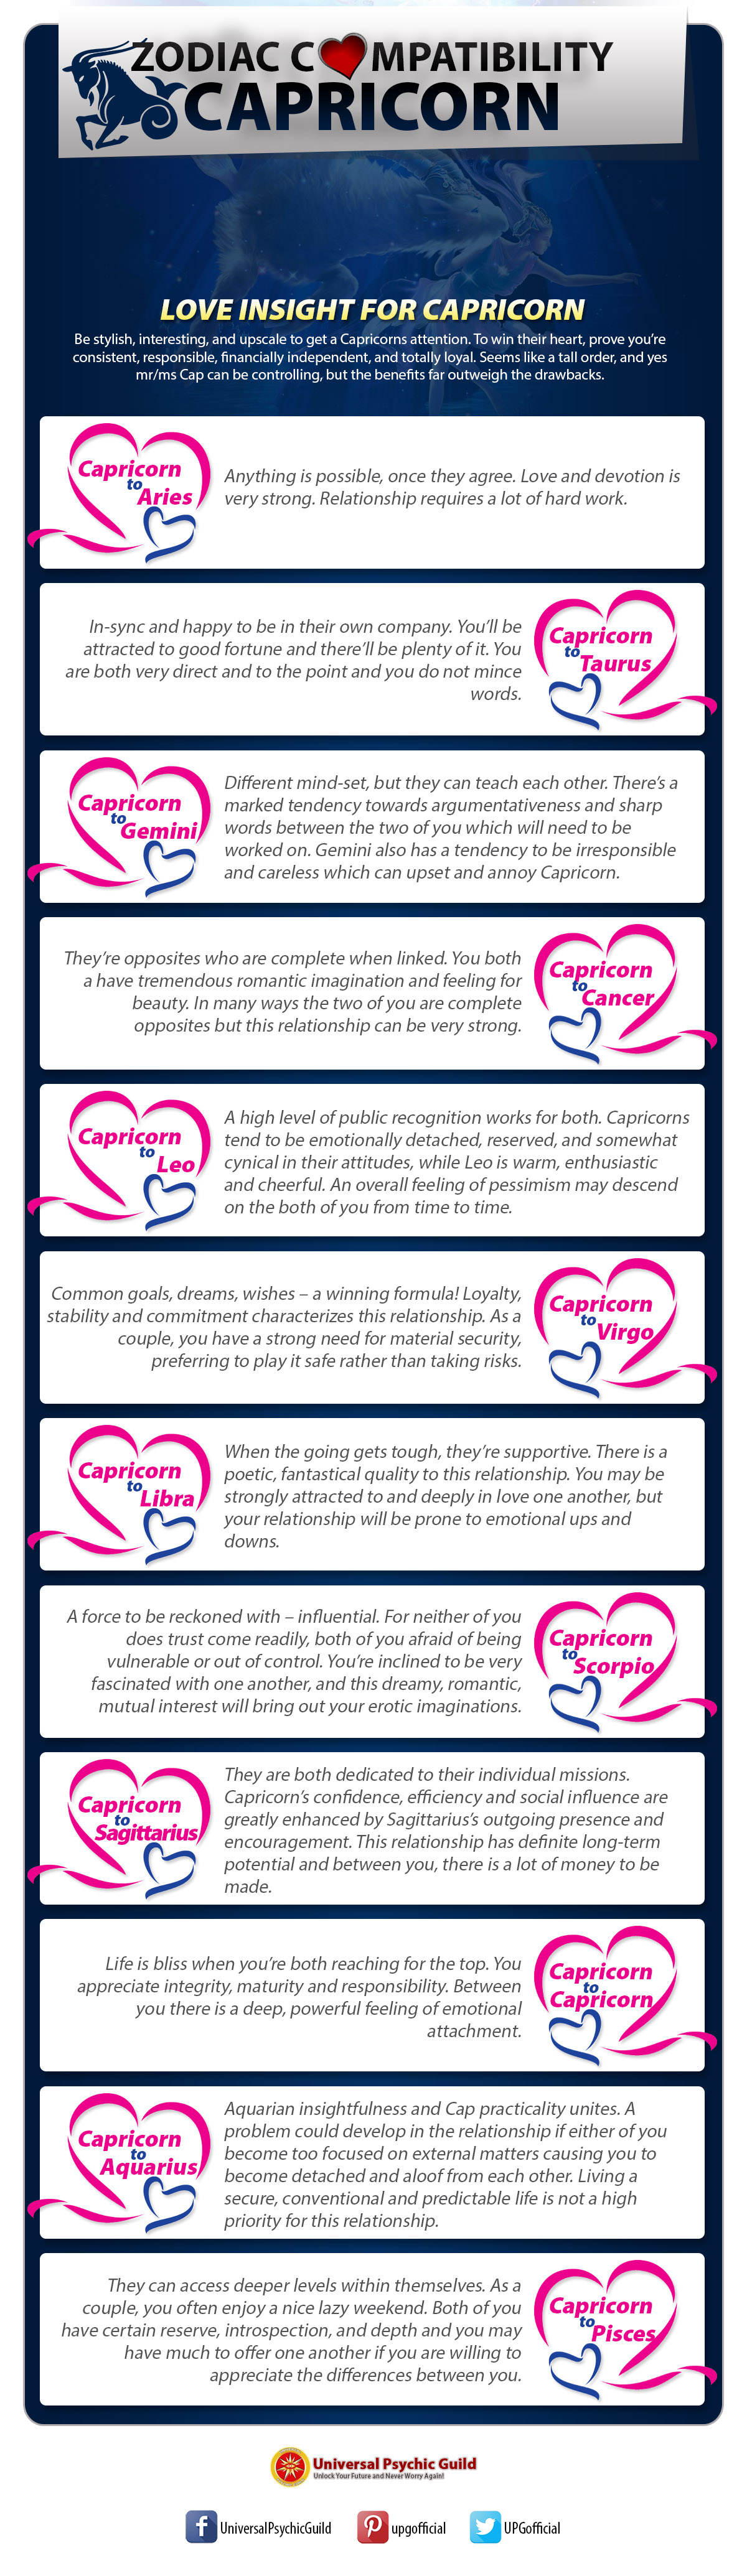 Infographic zodiac compatibility for capricorn read more at capricorn compatibility chart for love communication explore our relationships guide to find best astrology match for zodiac sign nvjuhfo Image collections